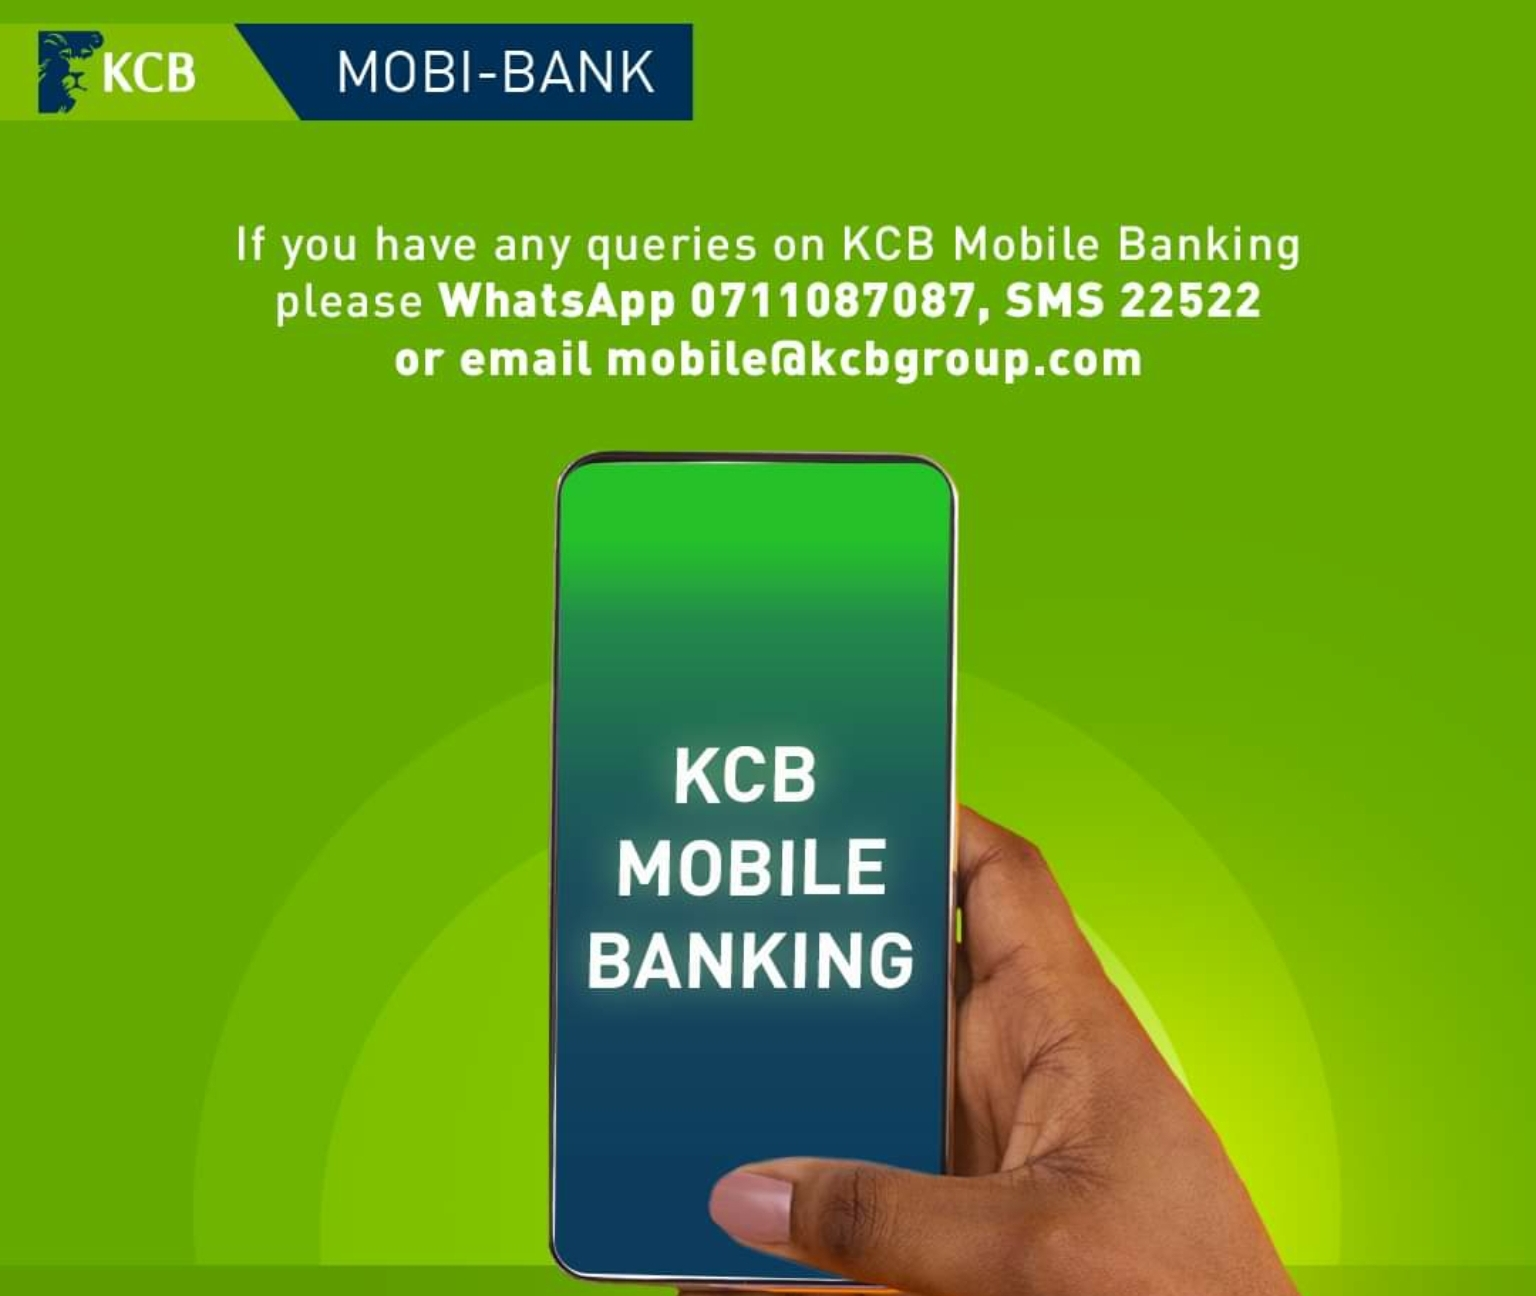 KCB MOBI-BANK CONTACTS